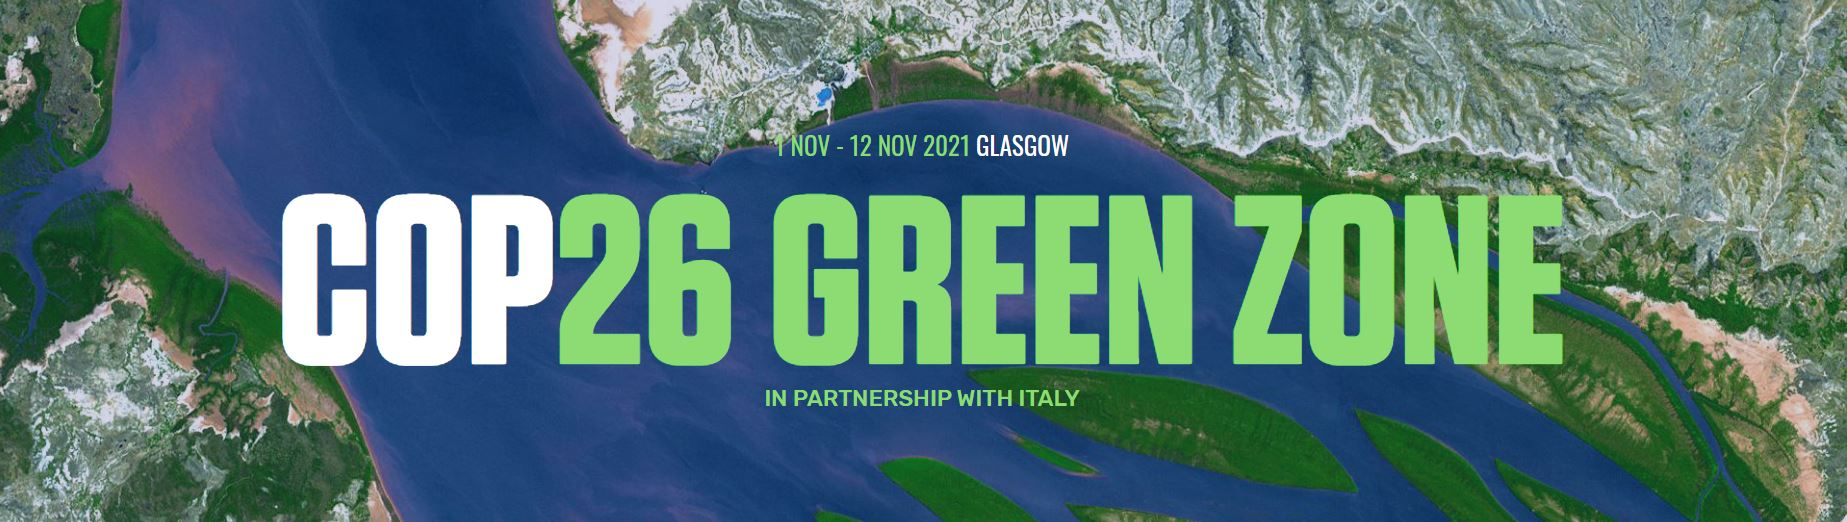 RCS musicians and filmmakers join forces for live Green Zone concert as part of COP26 Image